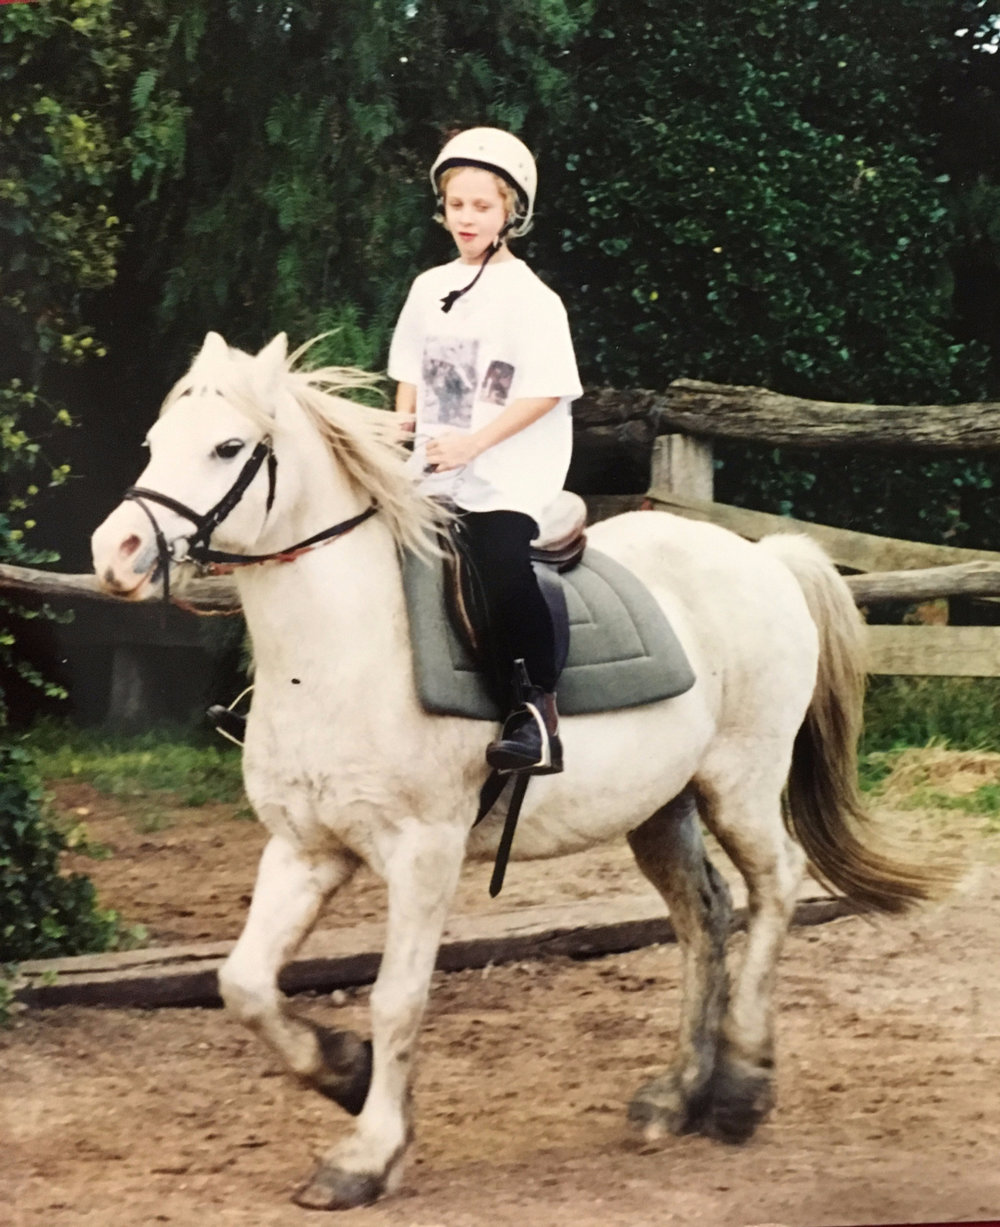 I look so surprised that I'm going to fast...what I should be surprised about is that I was allowed out in public with the homemade horse t-shirt atrocity I was rocking